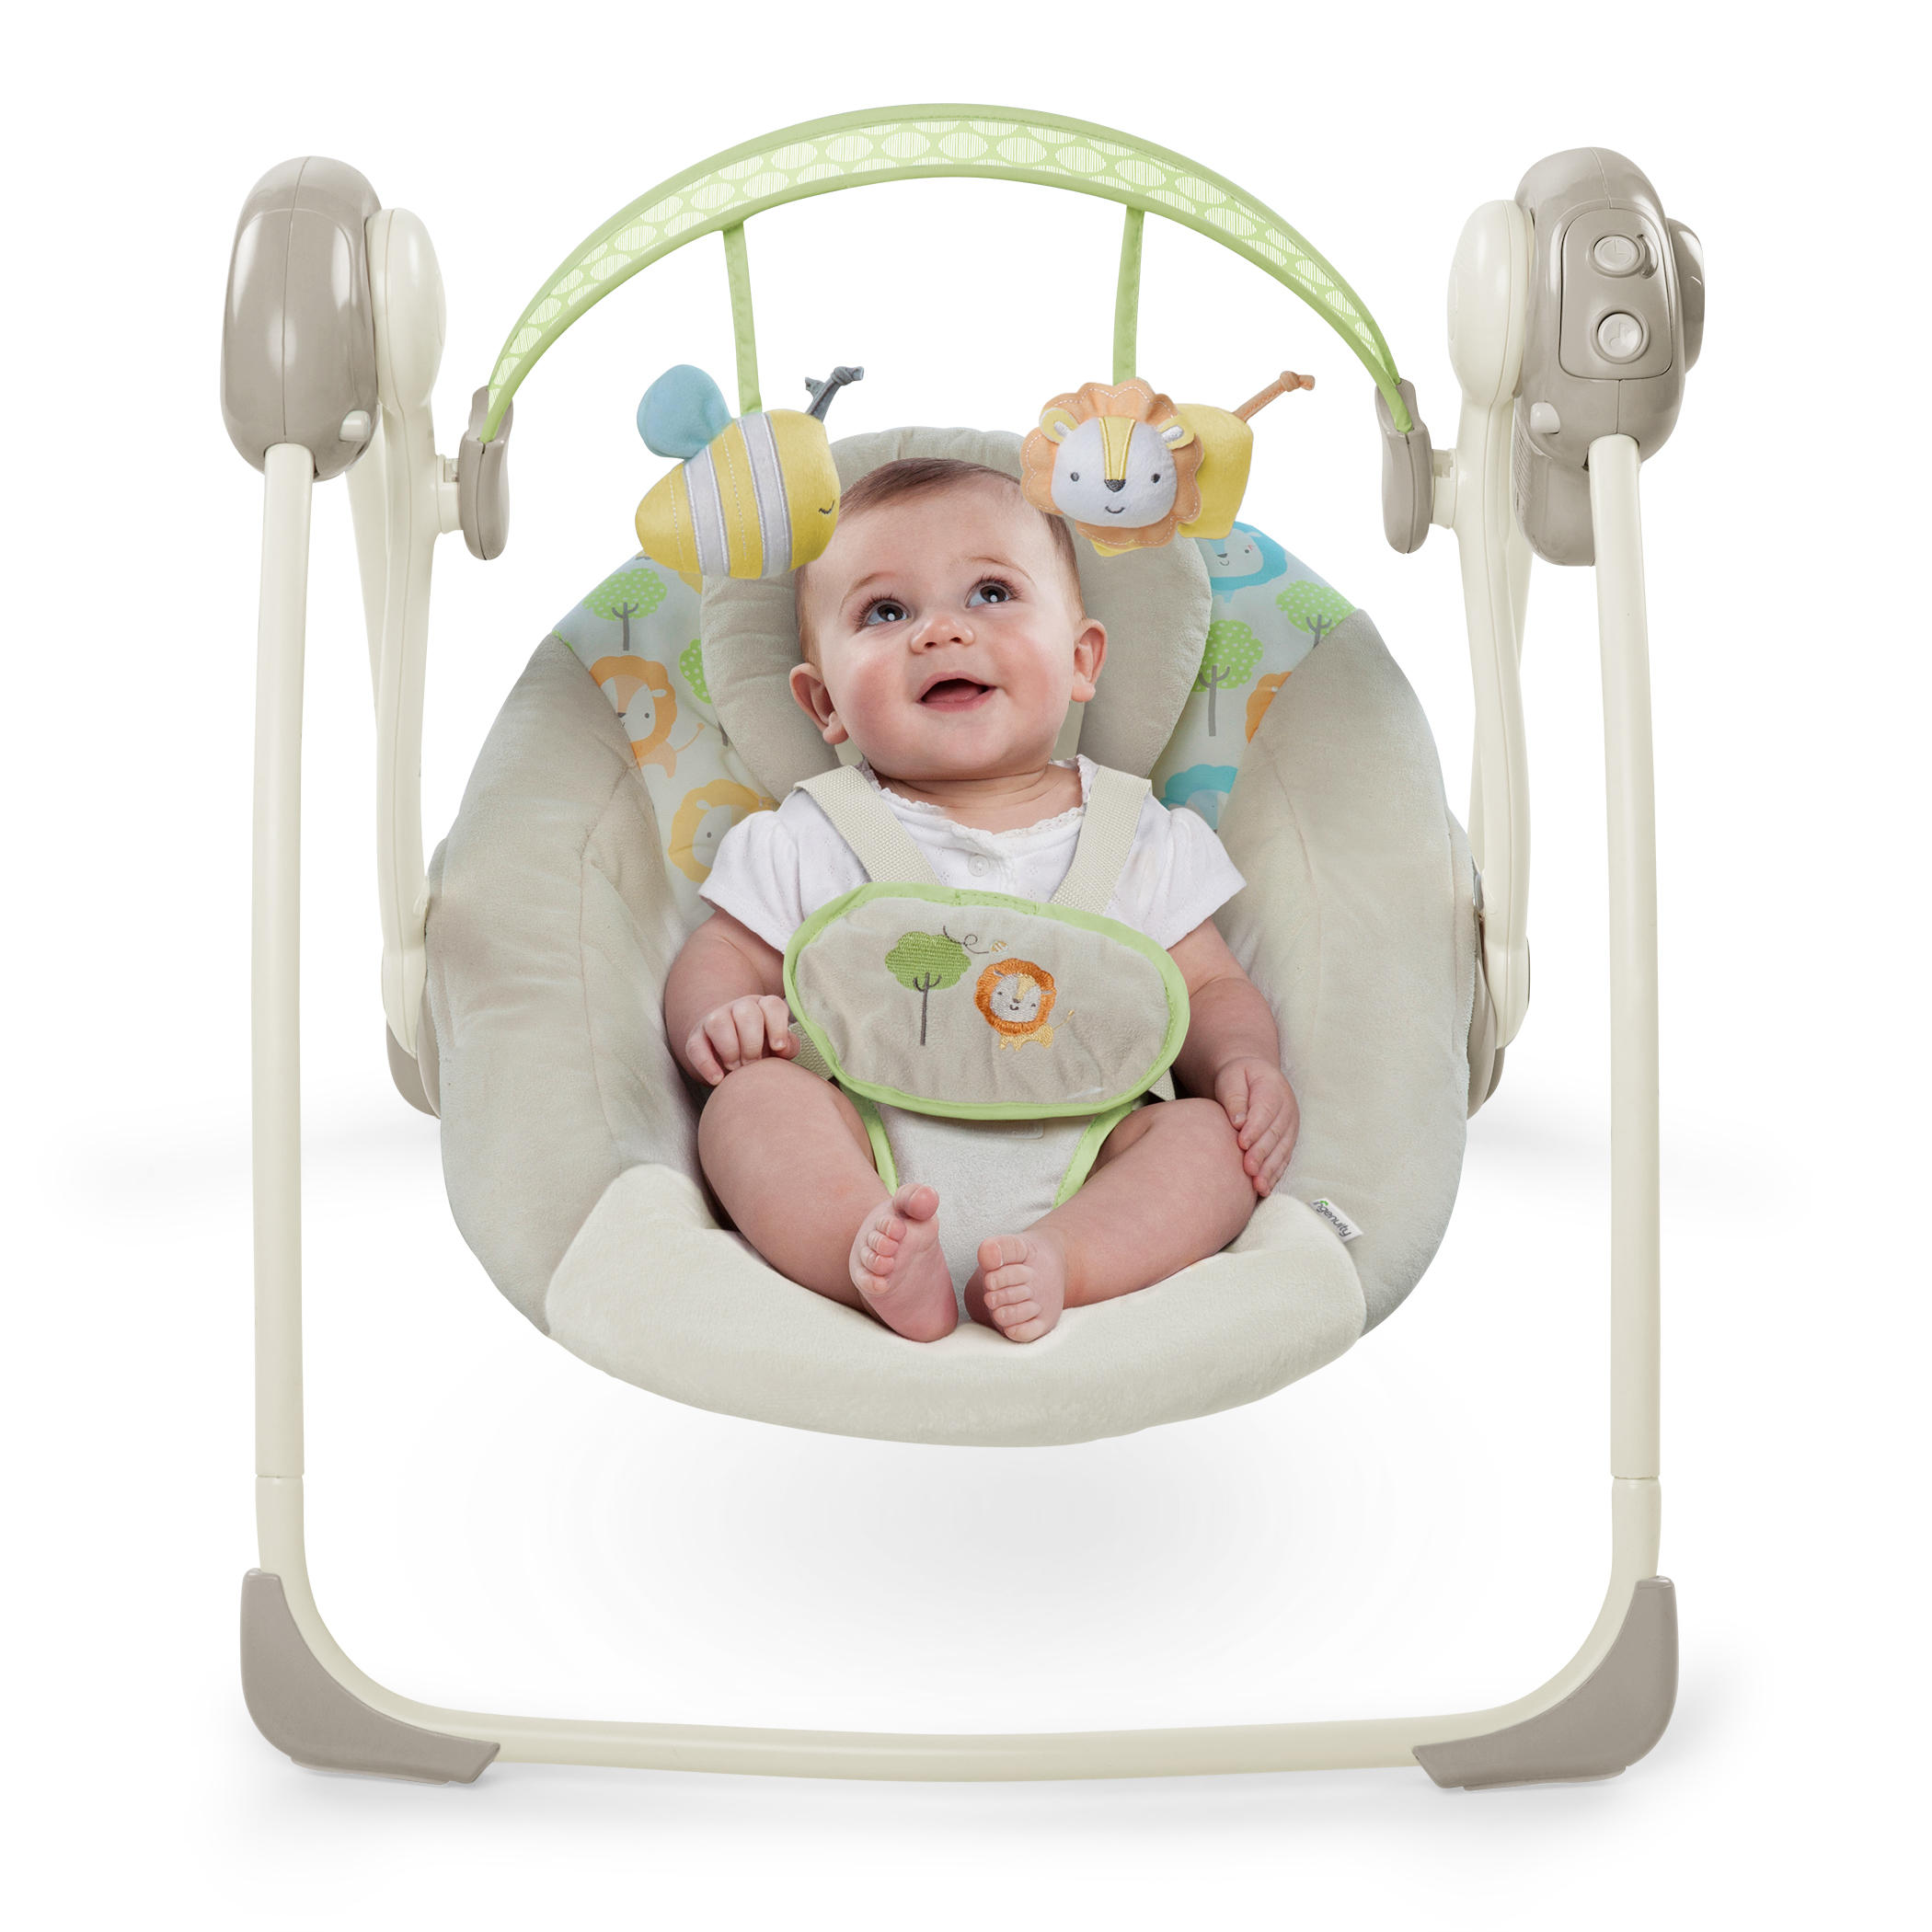 Soothe 'n Delight Portable Swing - Sunny Snuggles™